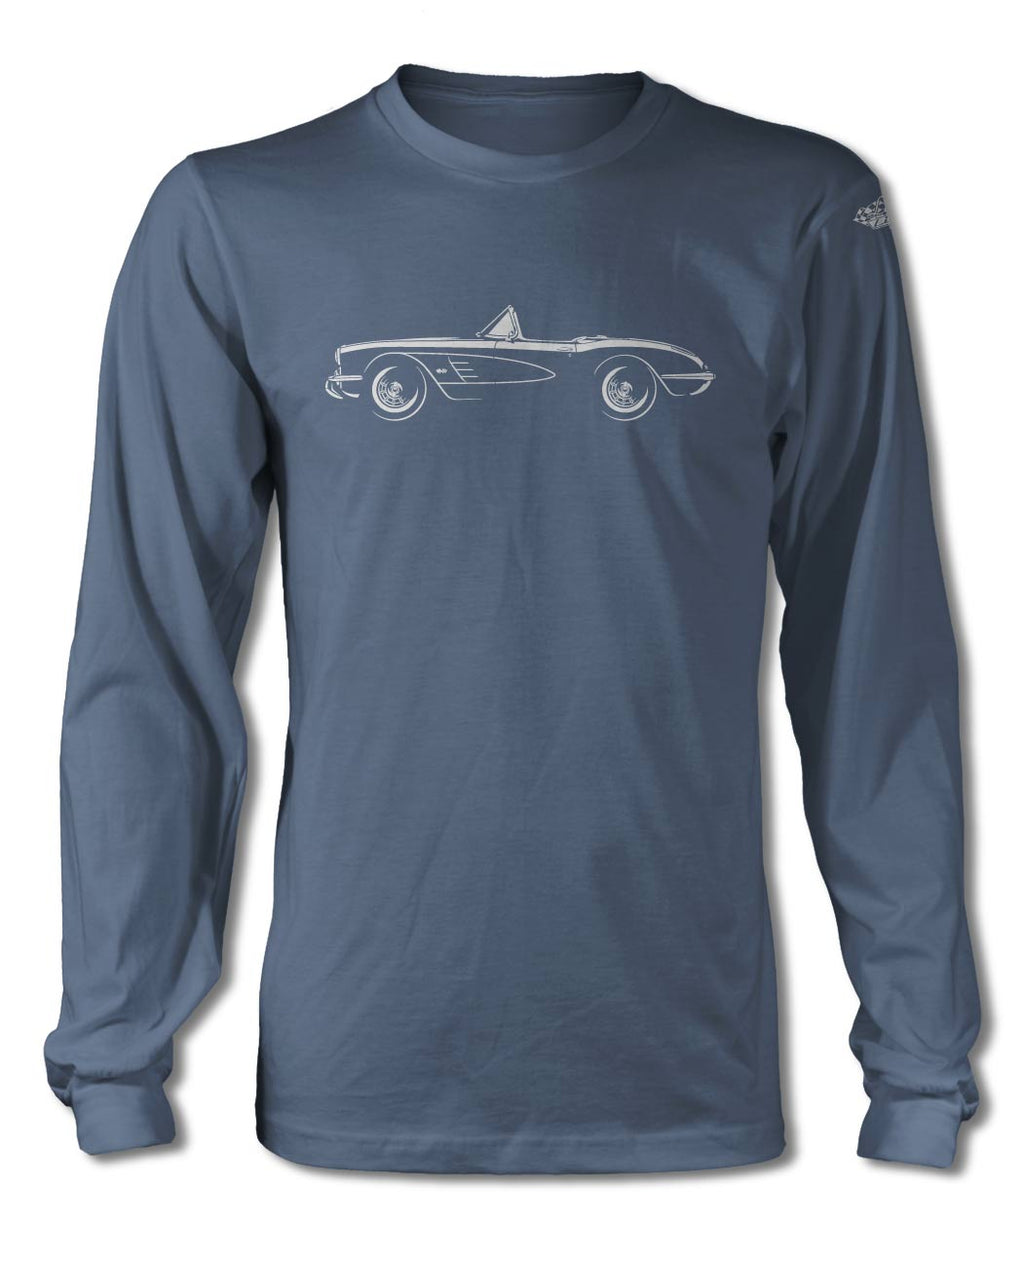 1958 Chevrolet Corvette Convertible C1 T-Shirt - Long Sleeves - Side View